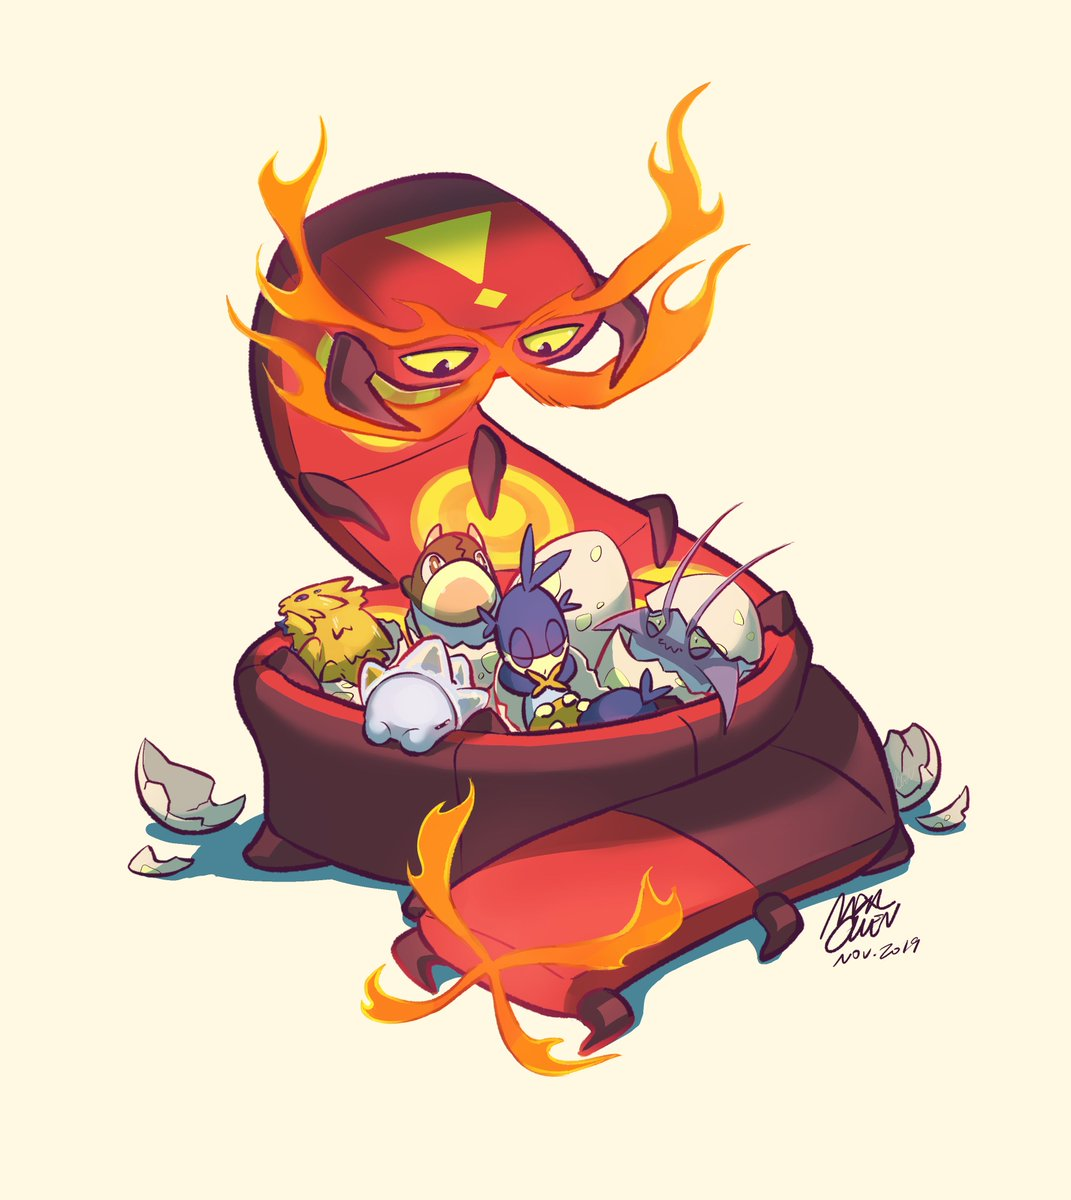 snug as a bug in a rug #pokemon <br>http://pic.twitter.com/bC64DTq9rh